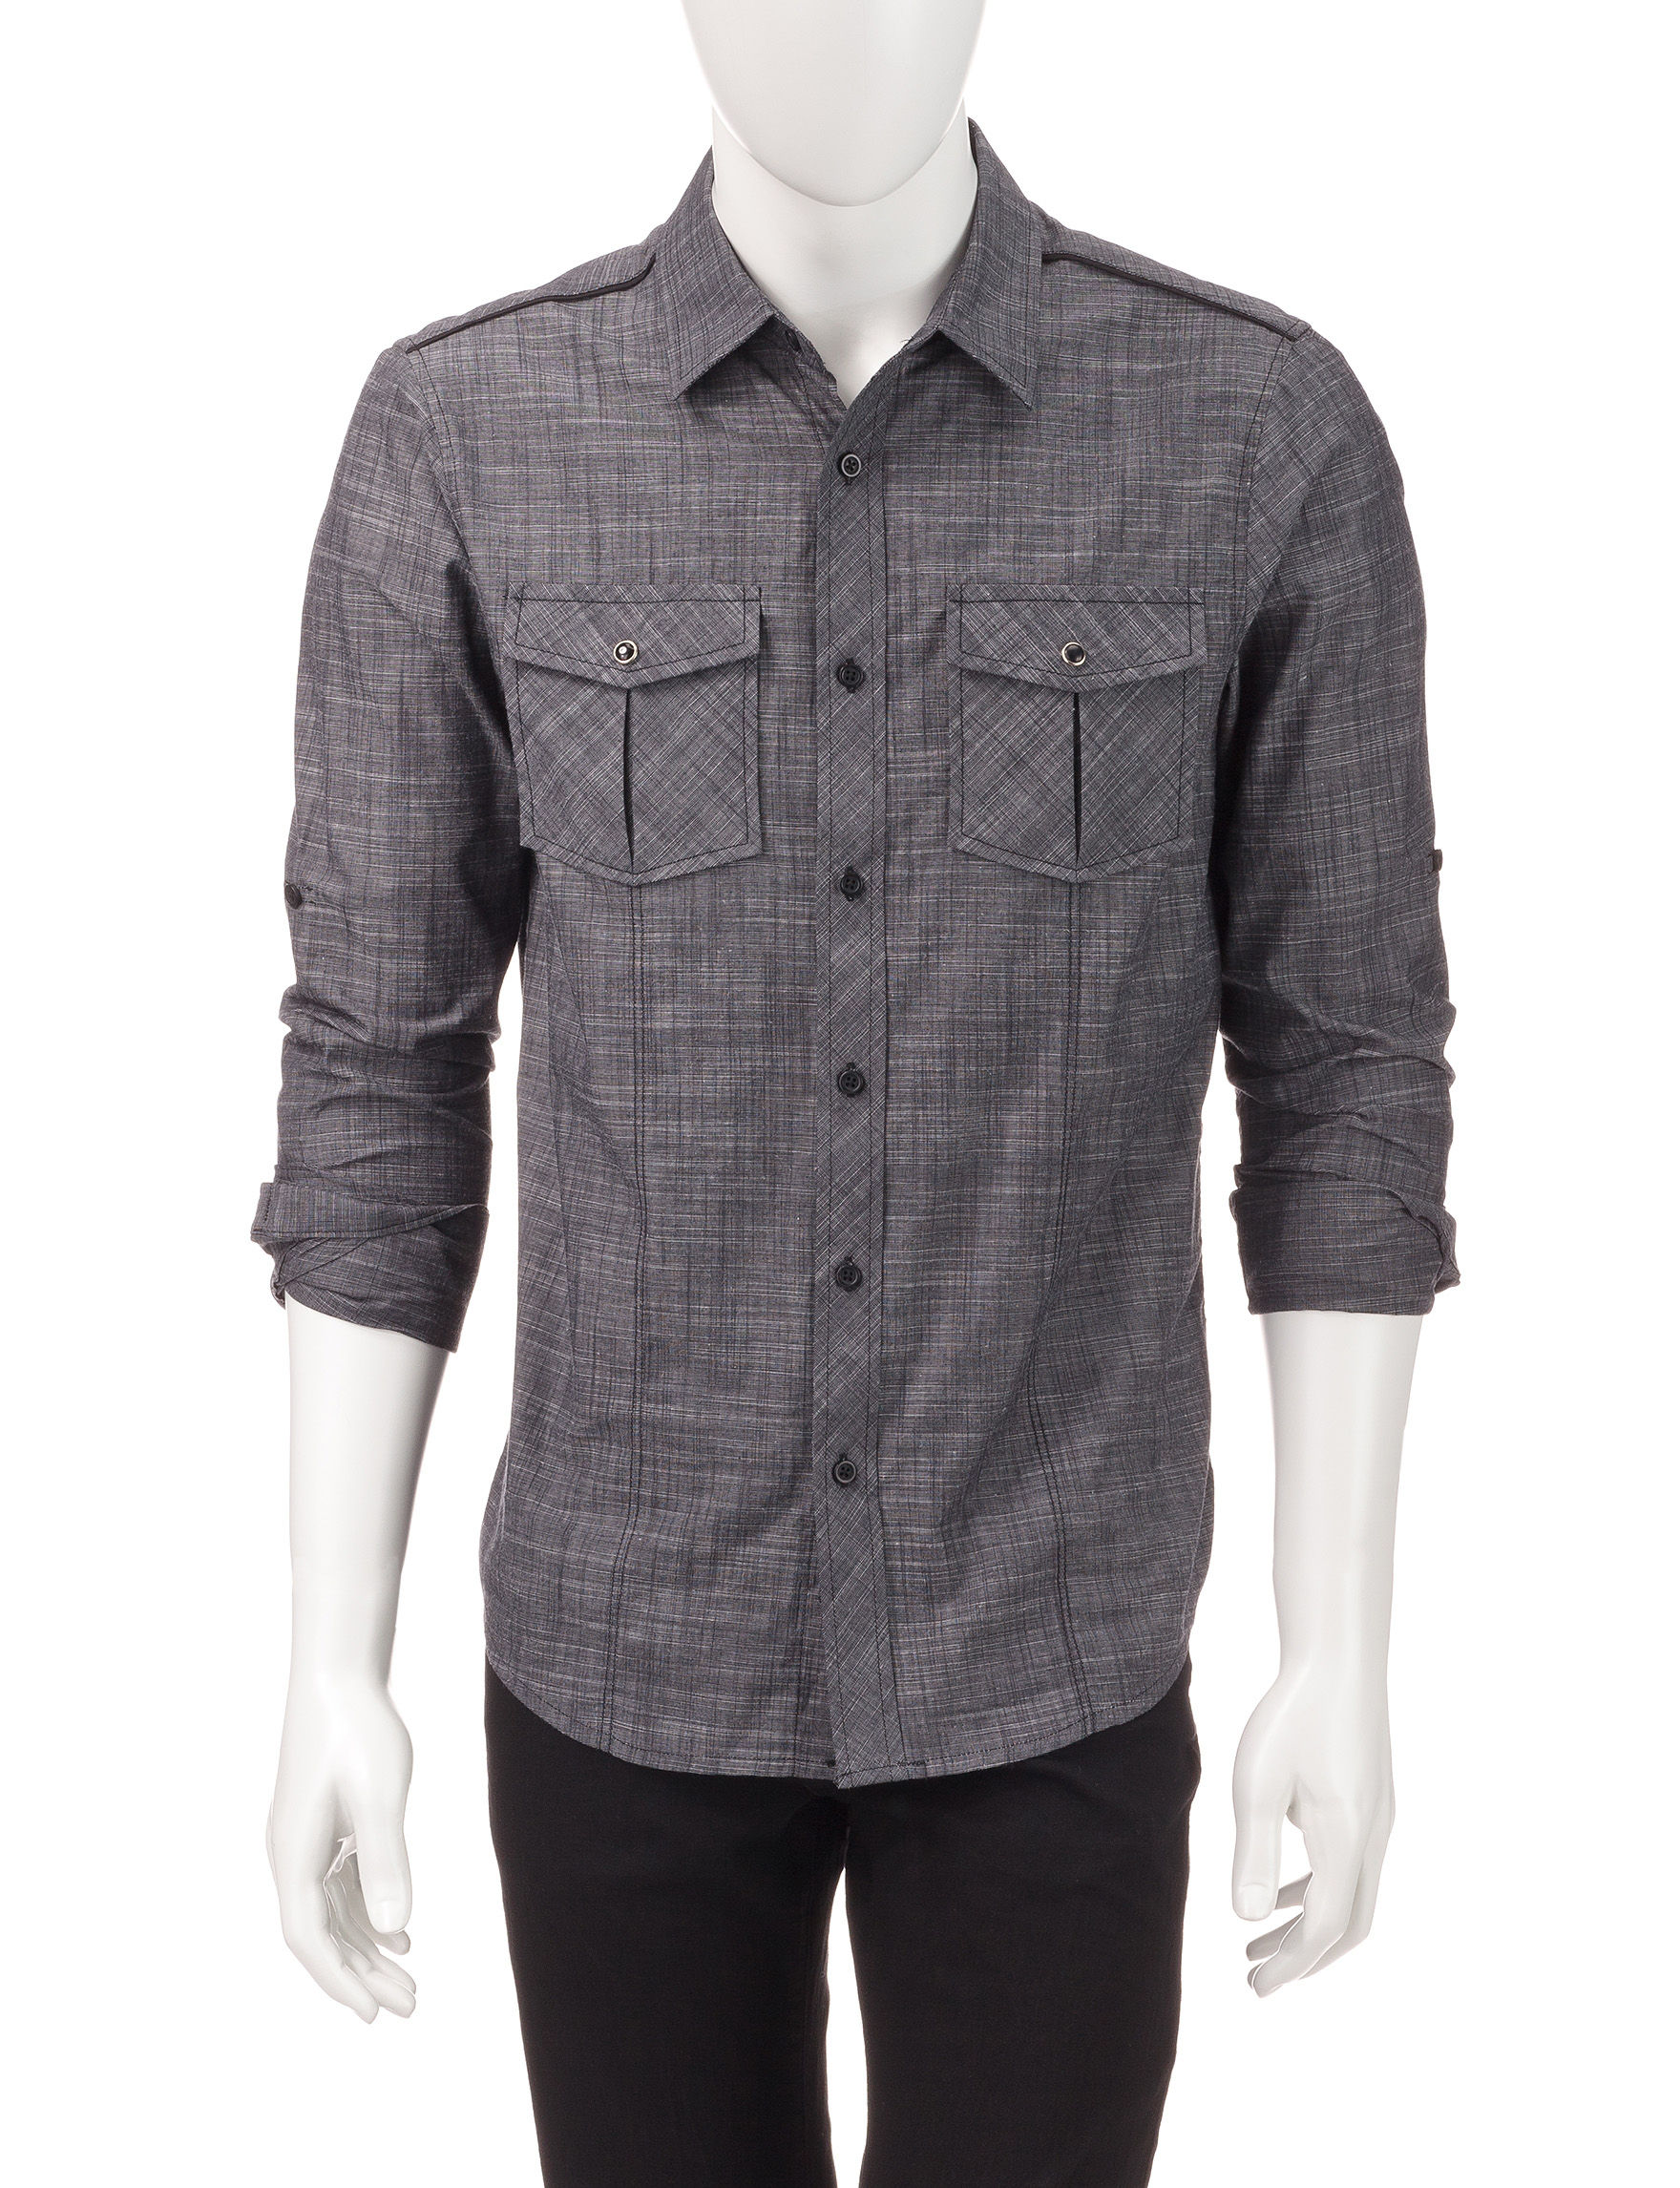 Signature Studio Charcoal Casual Button Down Shirts